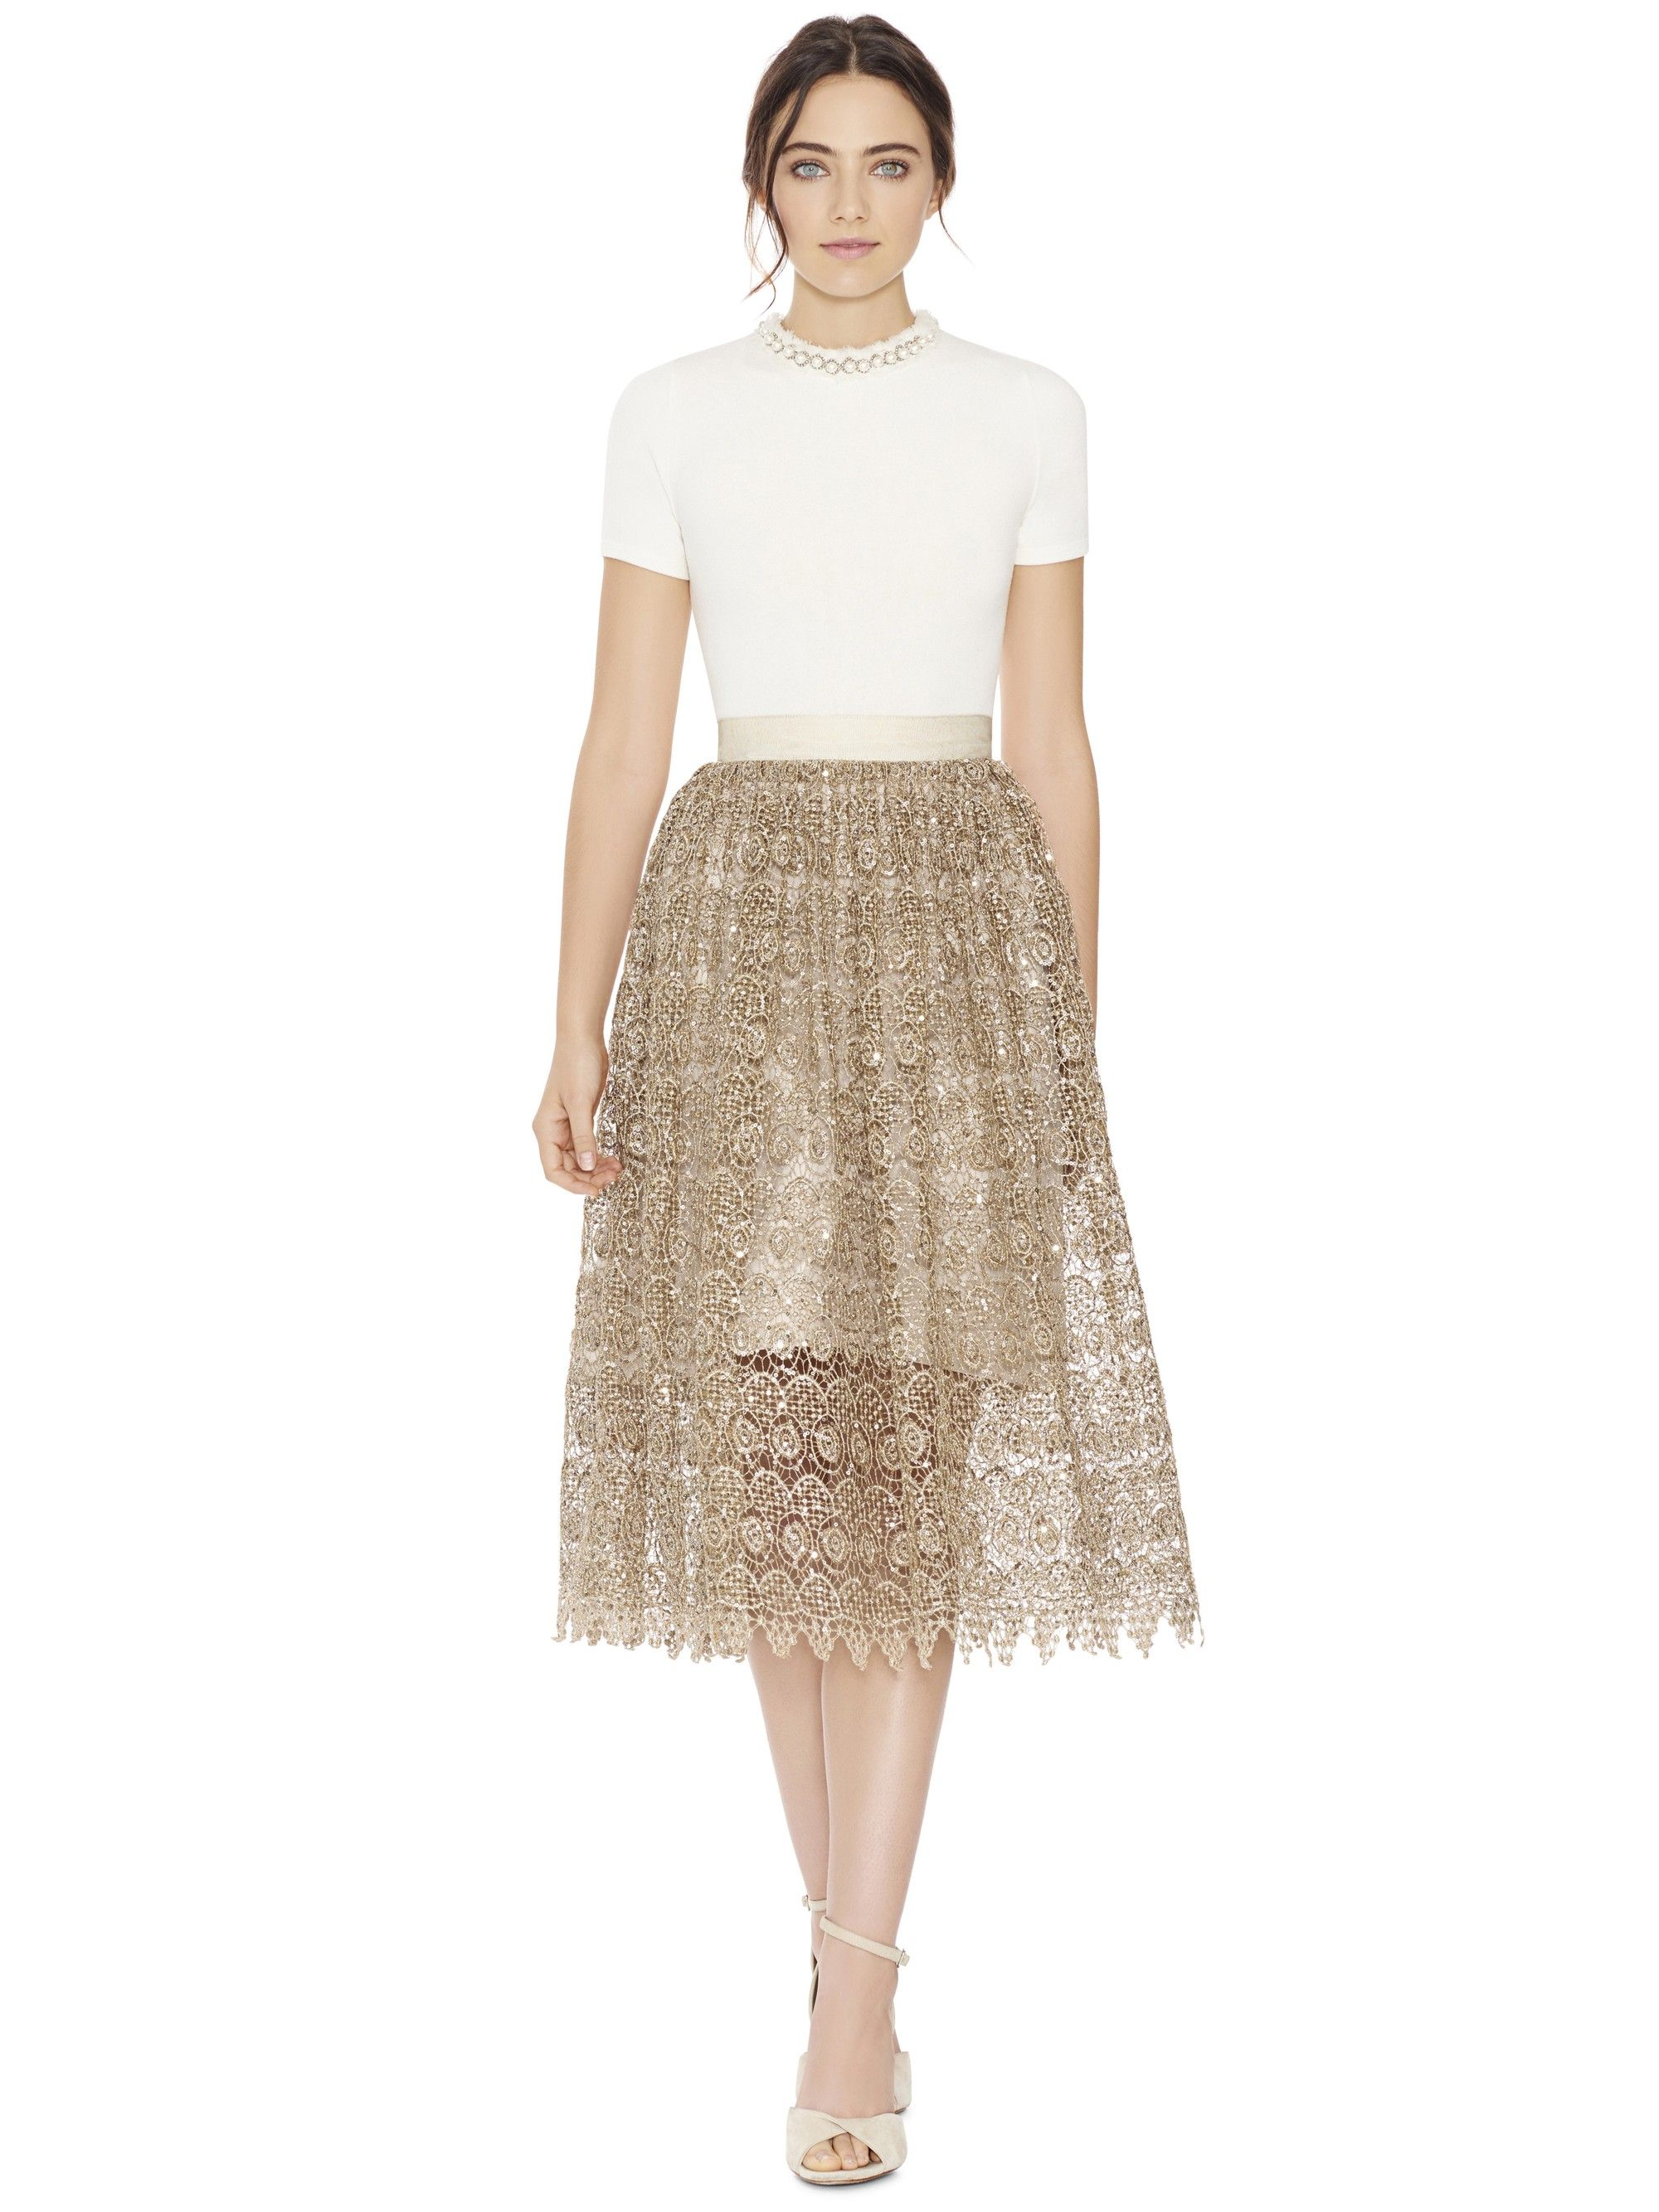 Alice and olivia almira midlength party skirt gold alice and olivia almira midlength party skirt gold aliceandolivia cloth ombrellifo Images